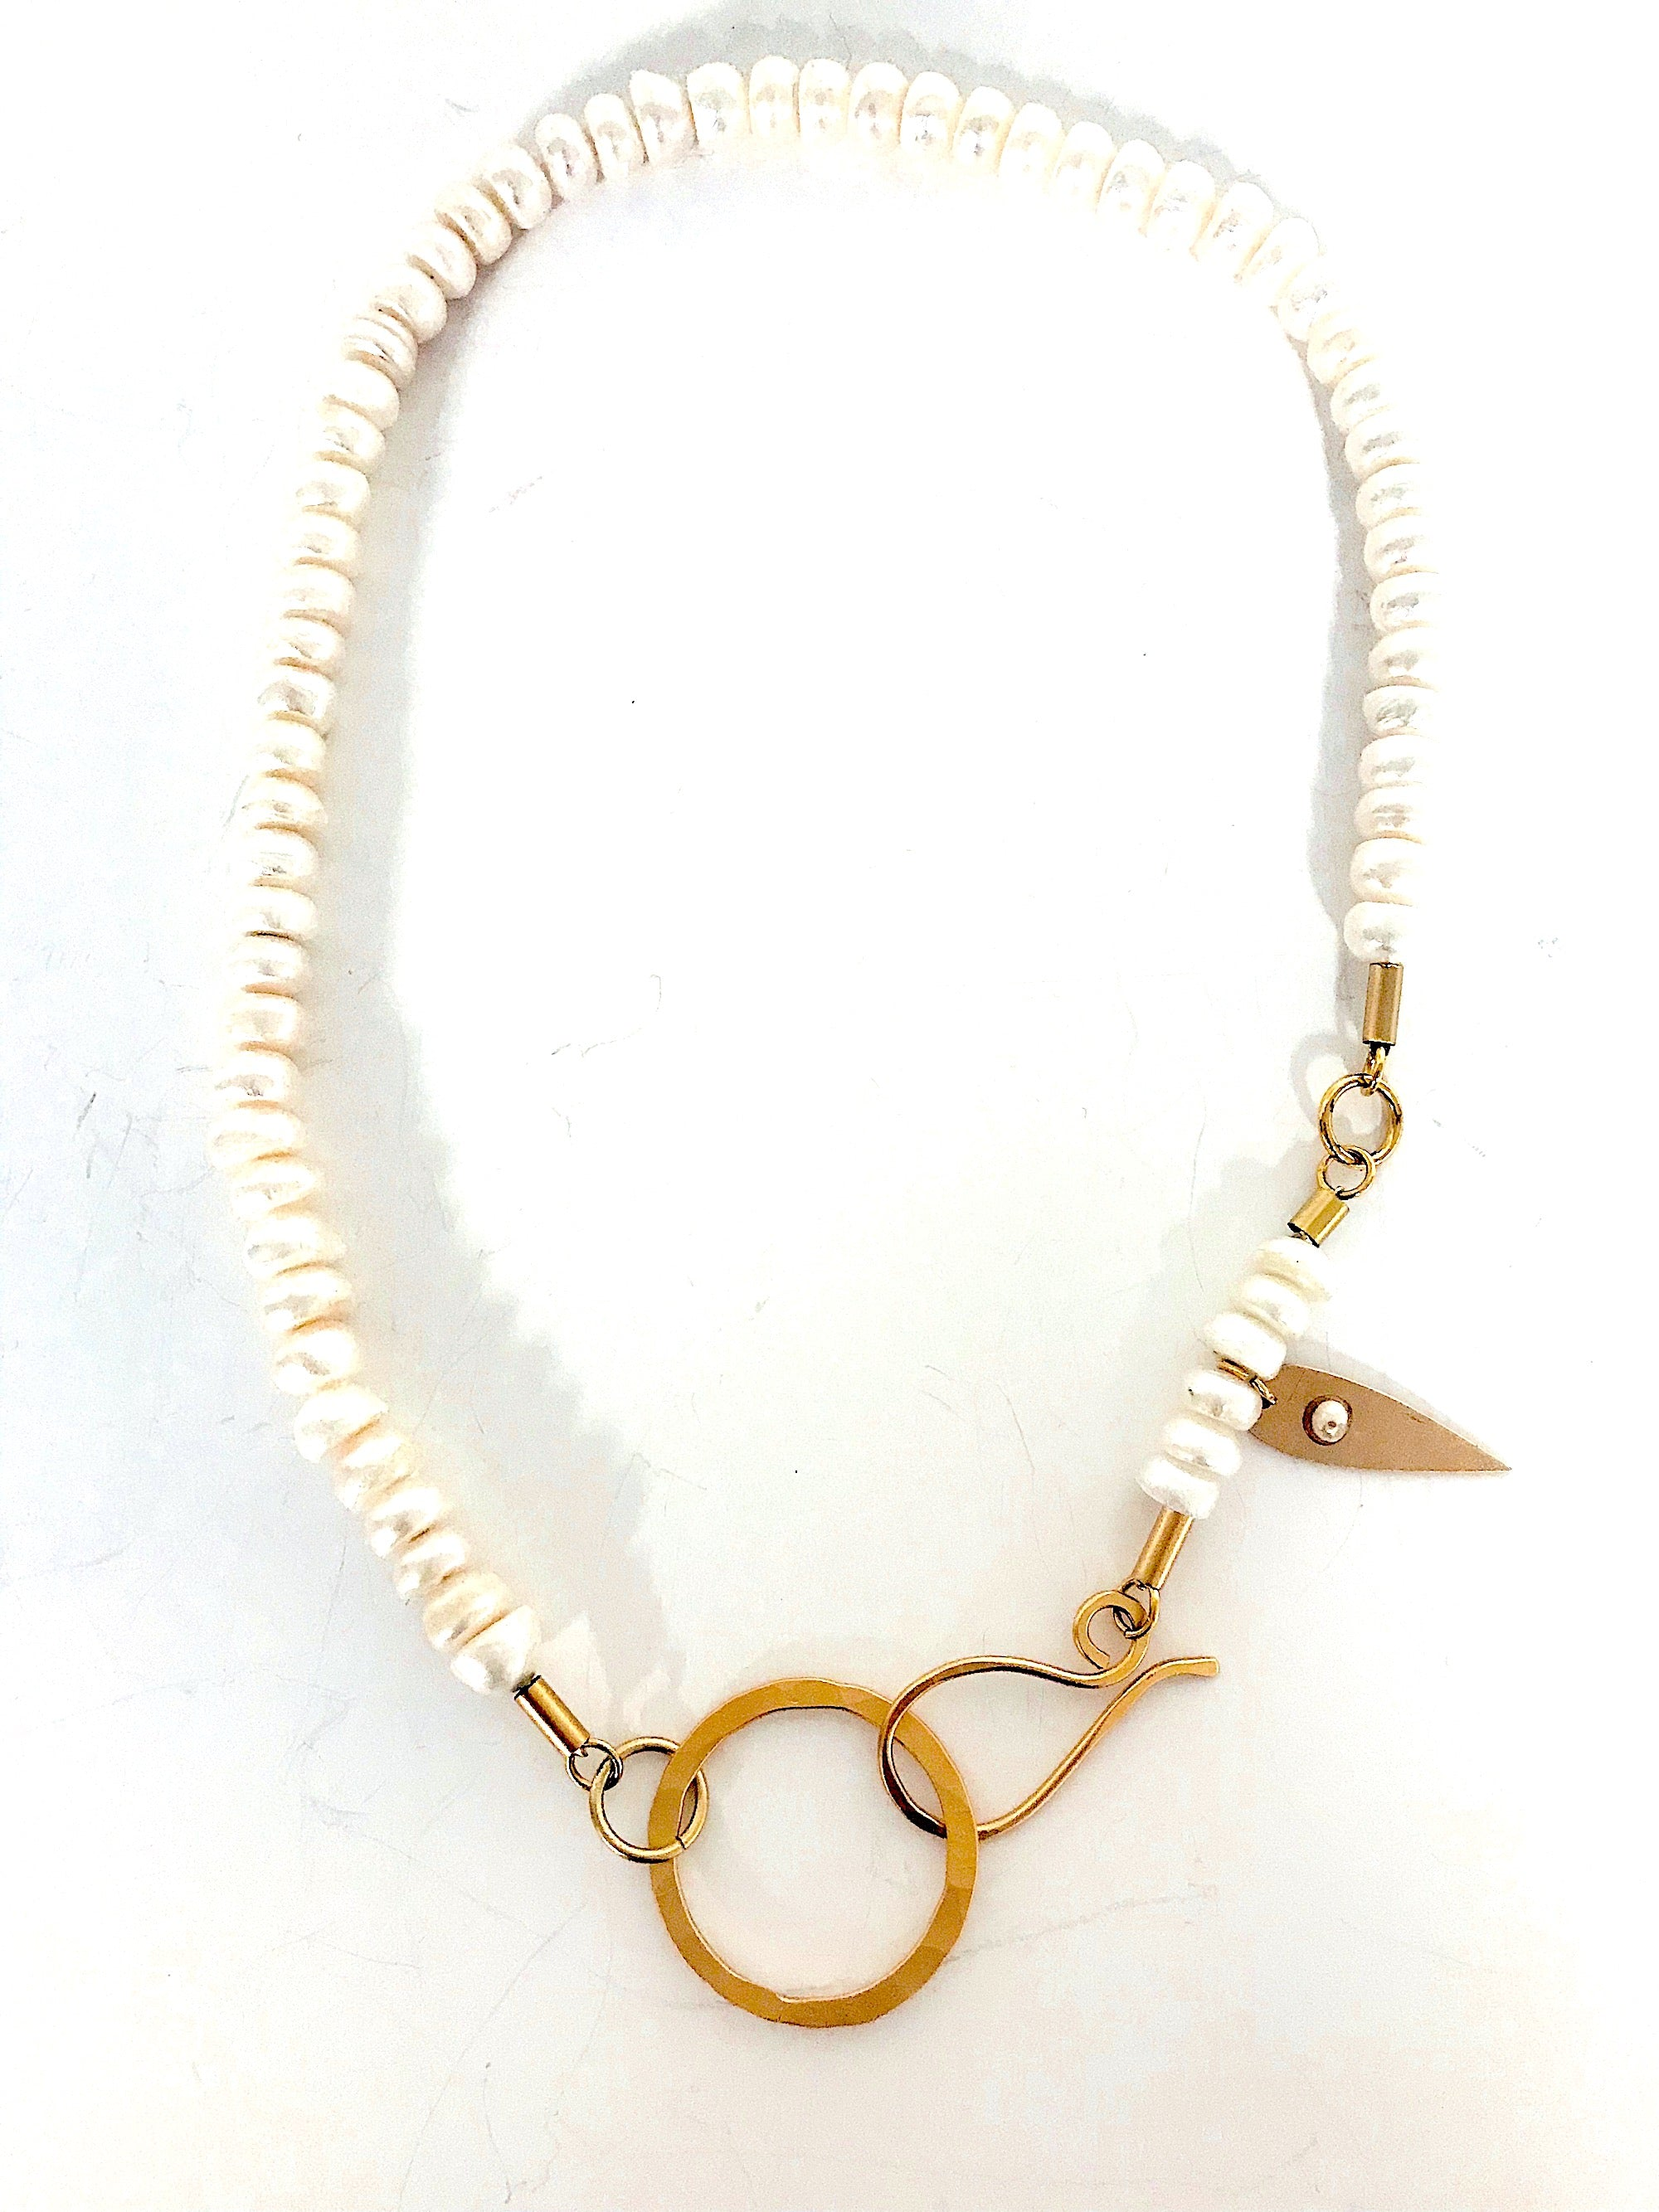 A Mix of Pearl and Gold Necklace